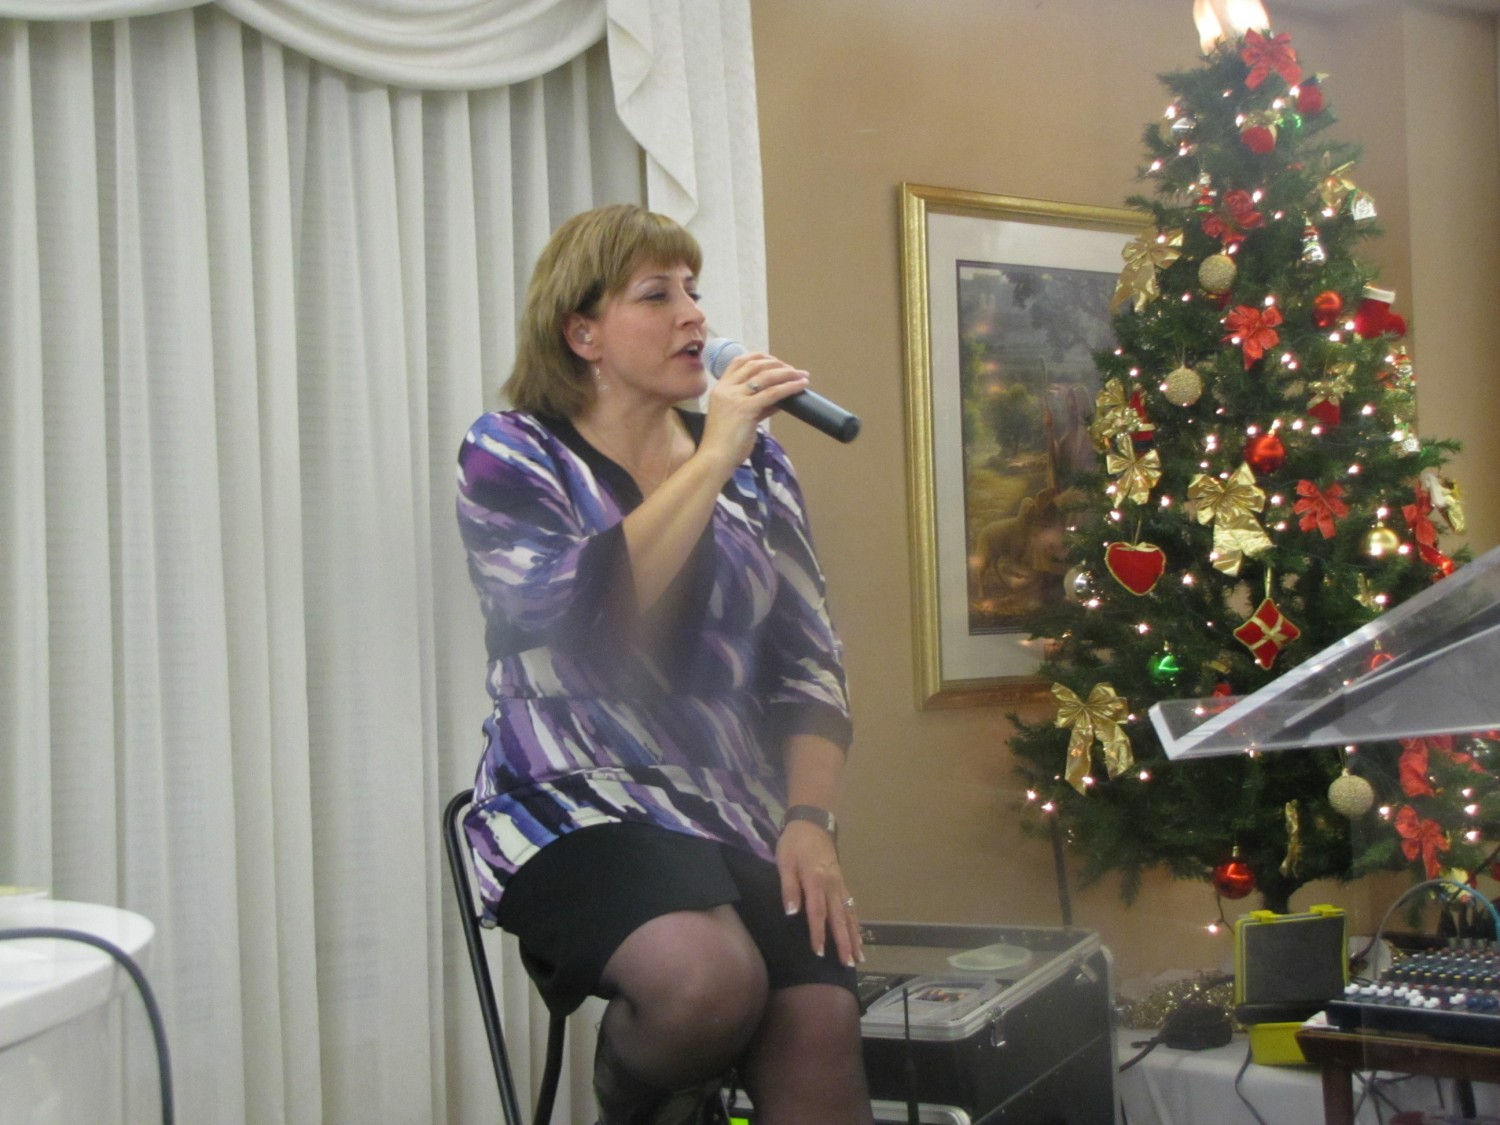 Dianne singing a Christmas song